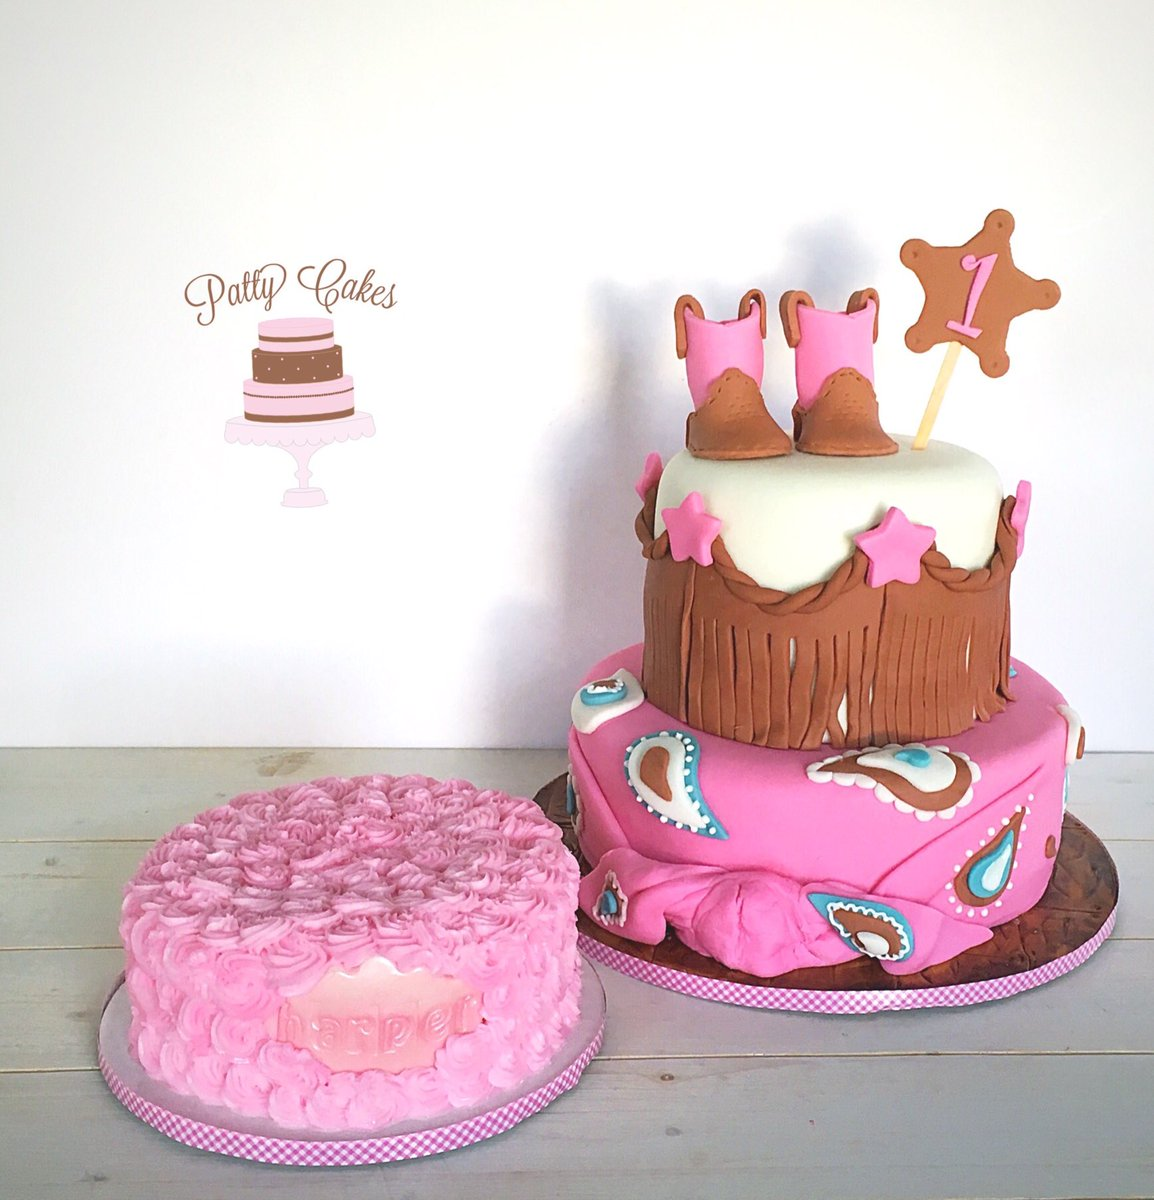 Tremendous Patty Cakes Bakes On Twitter Cowgirl Themed Birthday Cake And Funny Birthday Cards Online Chimdamsfinfo